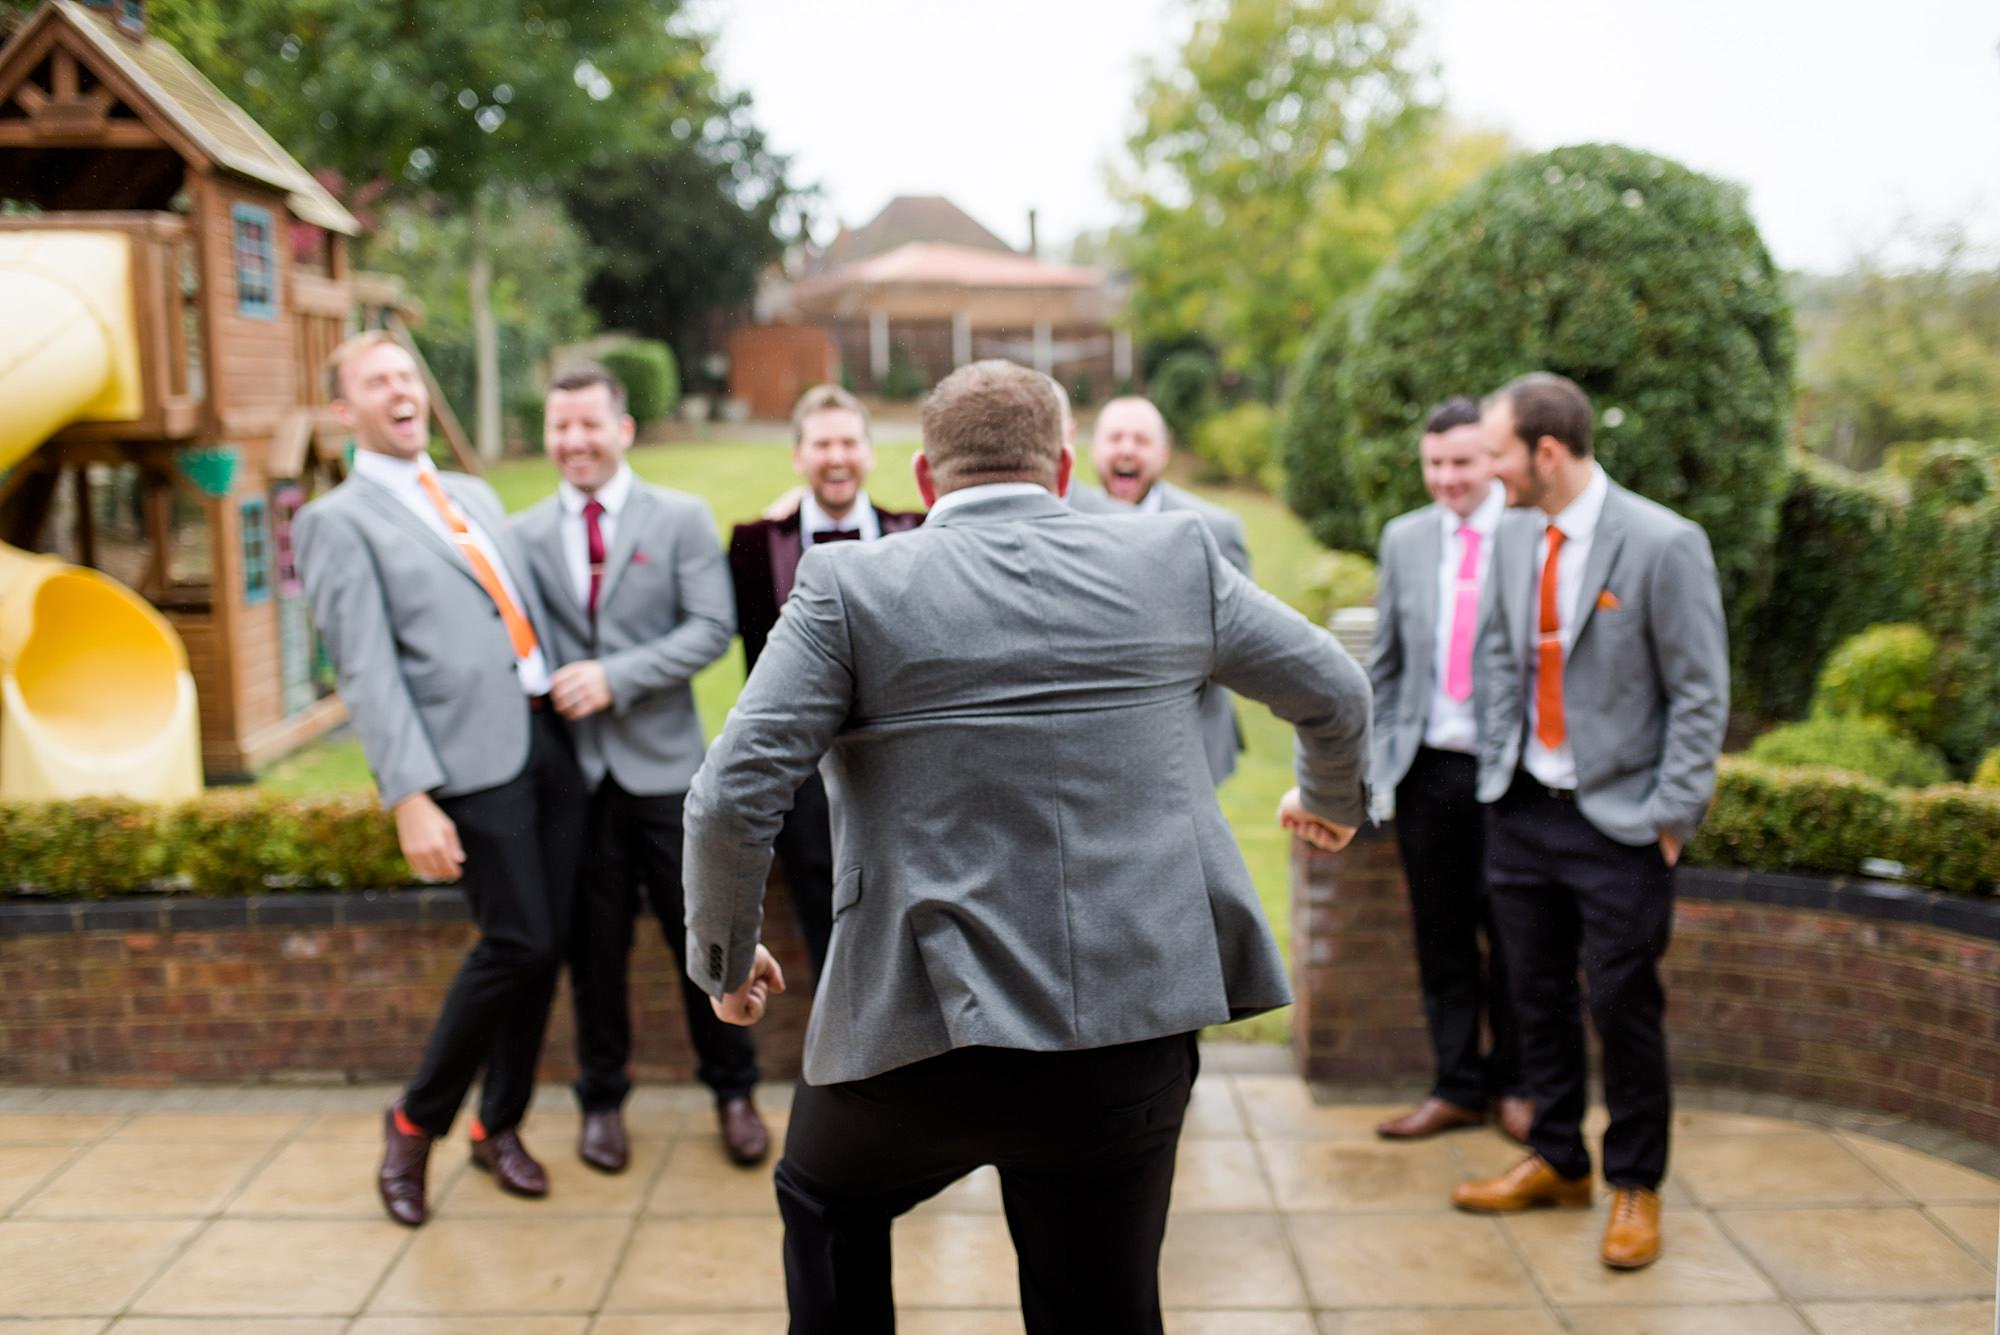 Fun London Wedding funny group portrait of groomsmen